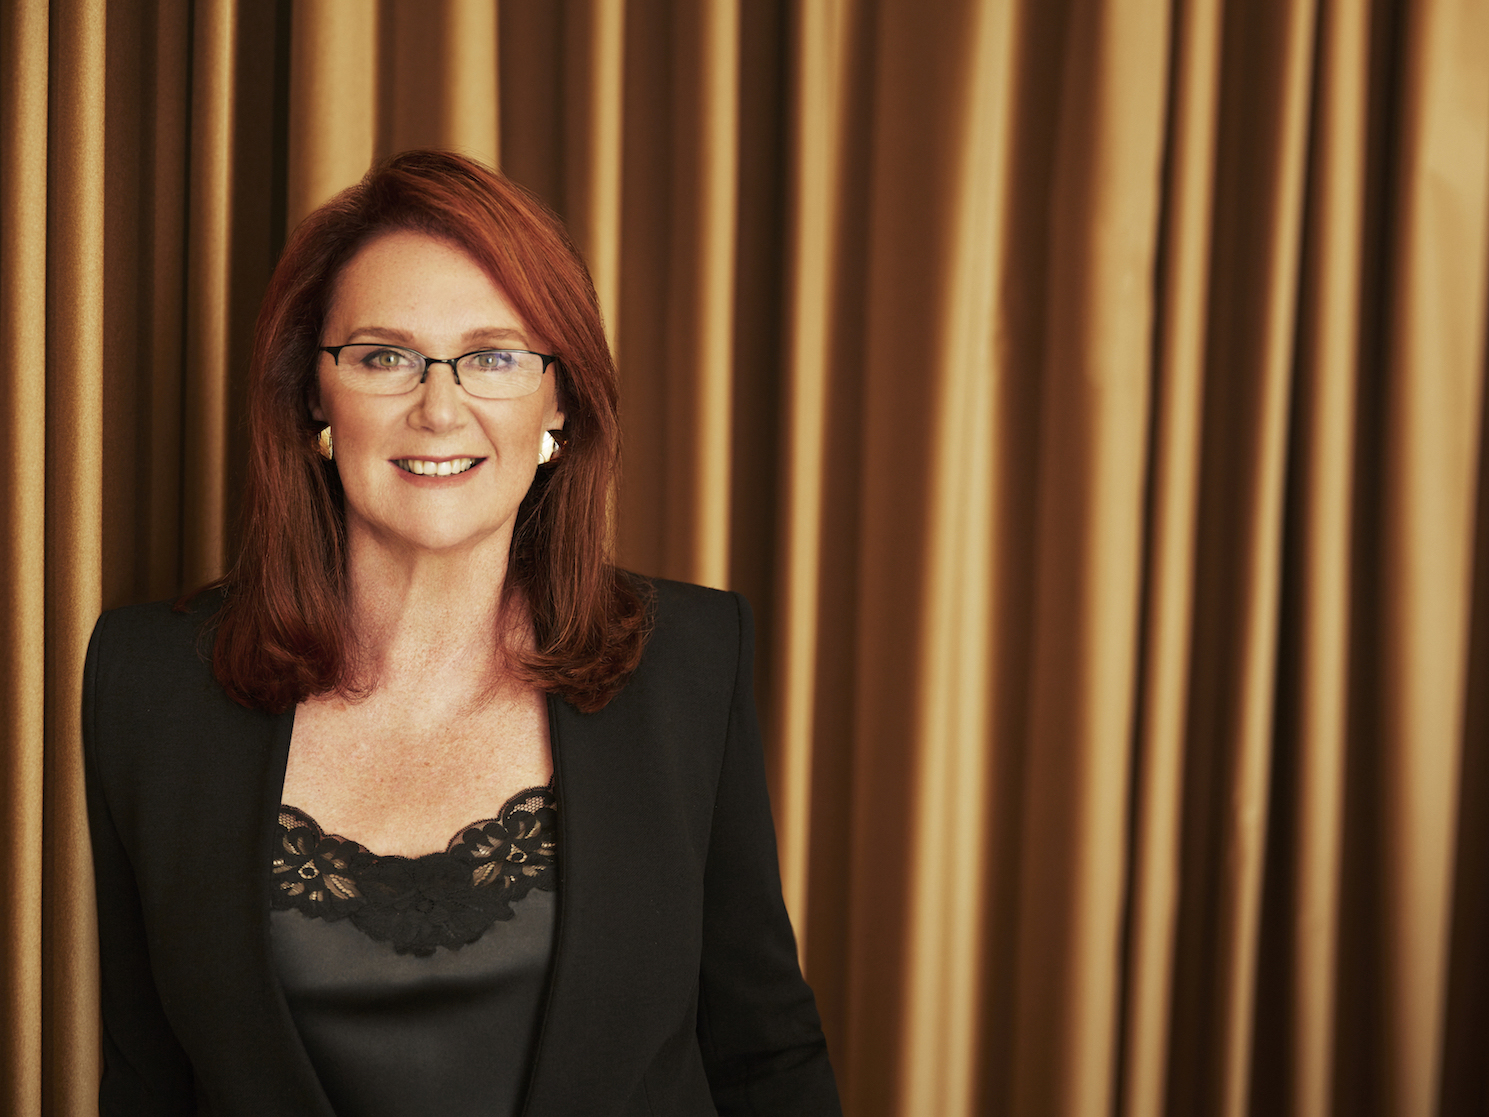 Naomi Milgrom was most recently the commissioner of the Australian Pavilion at the Venice Art Biennale 2017. Image: Mpavilion